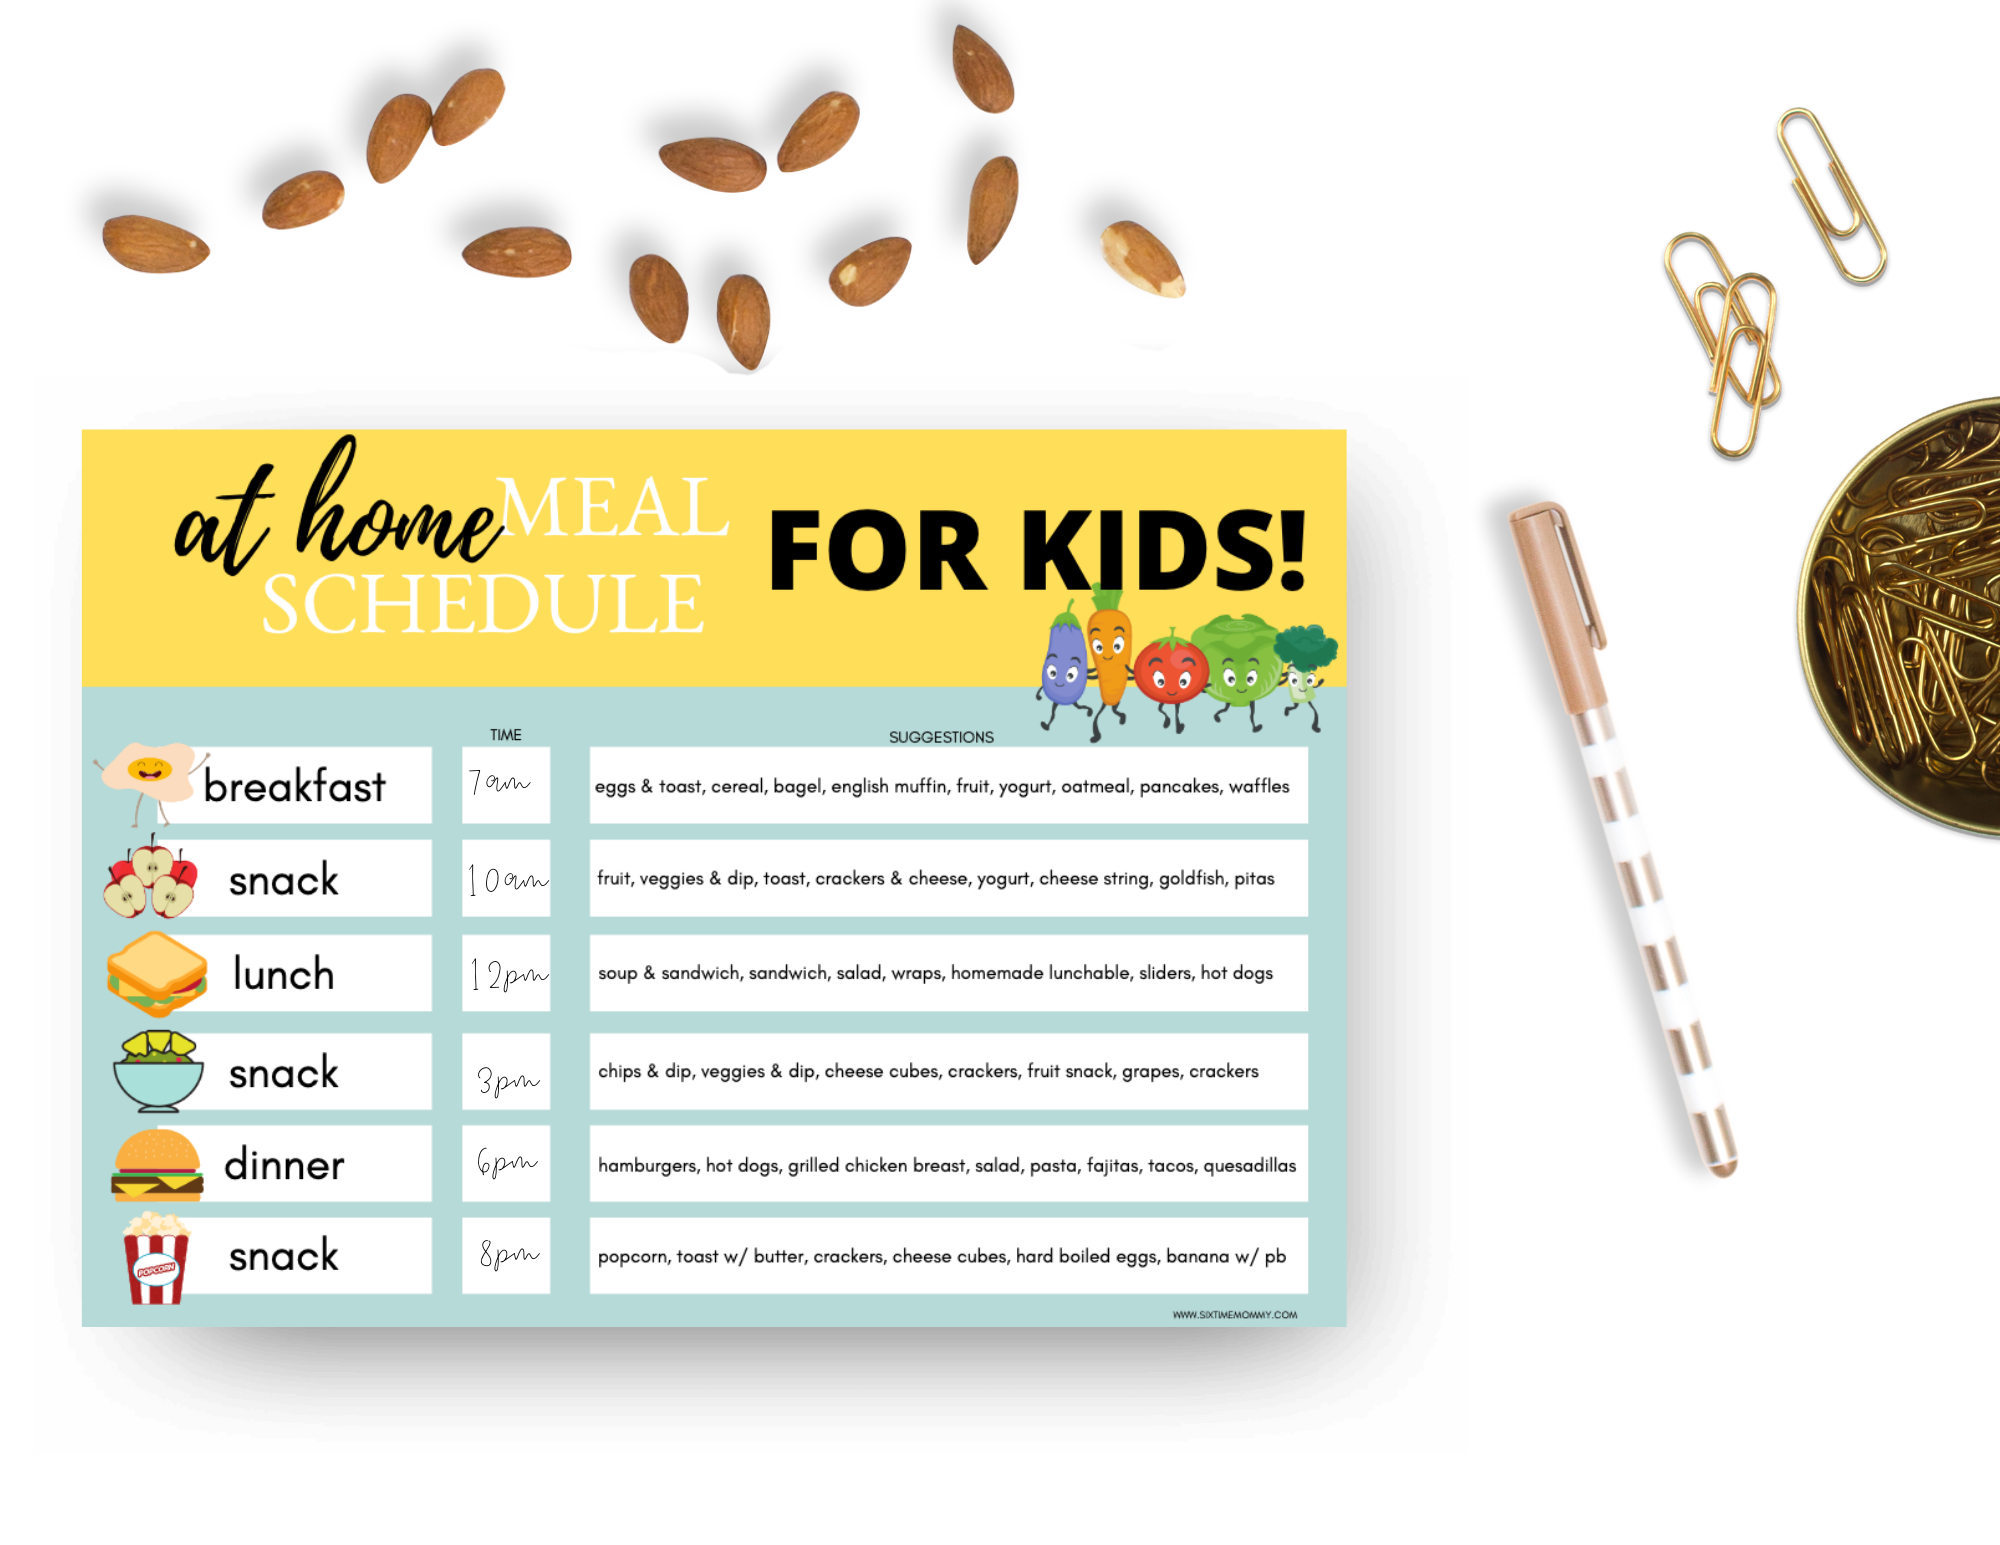 At Home Meal Schedule for Kids